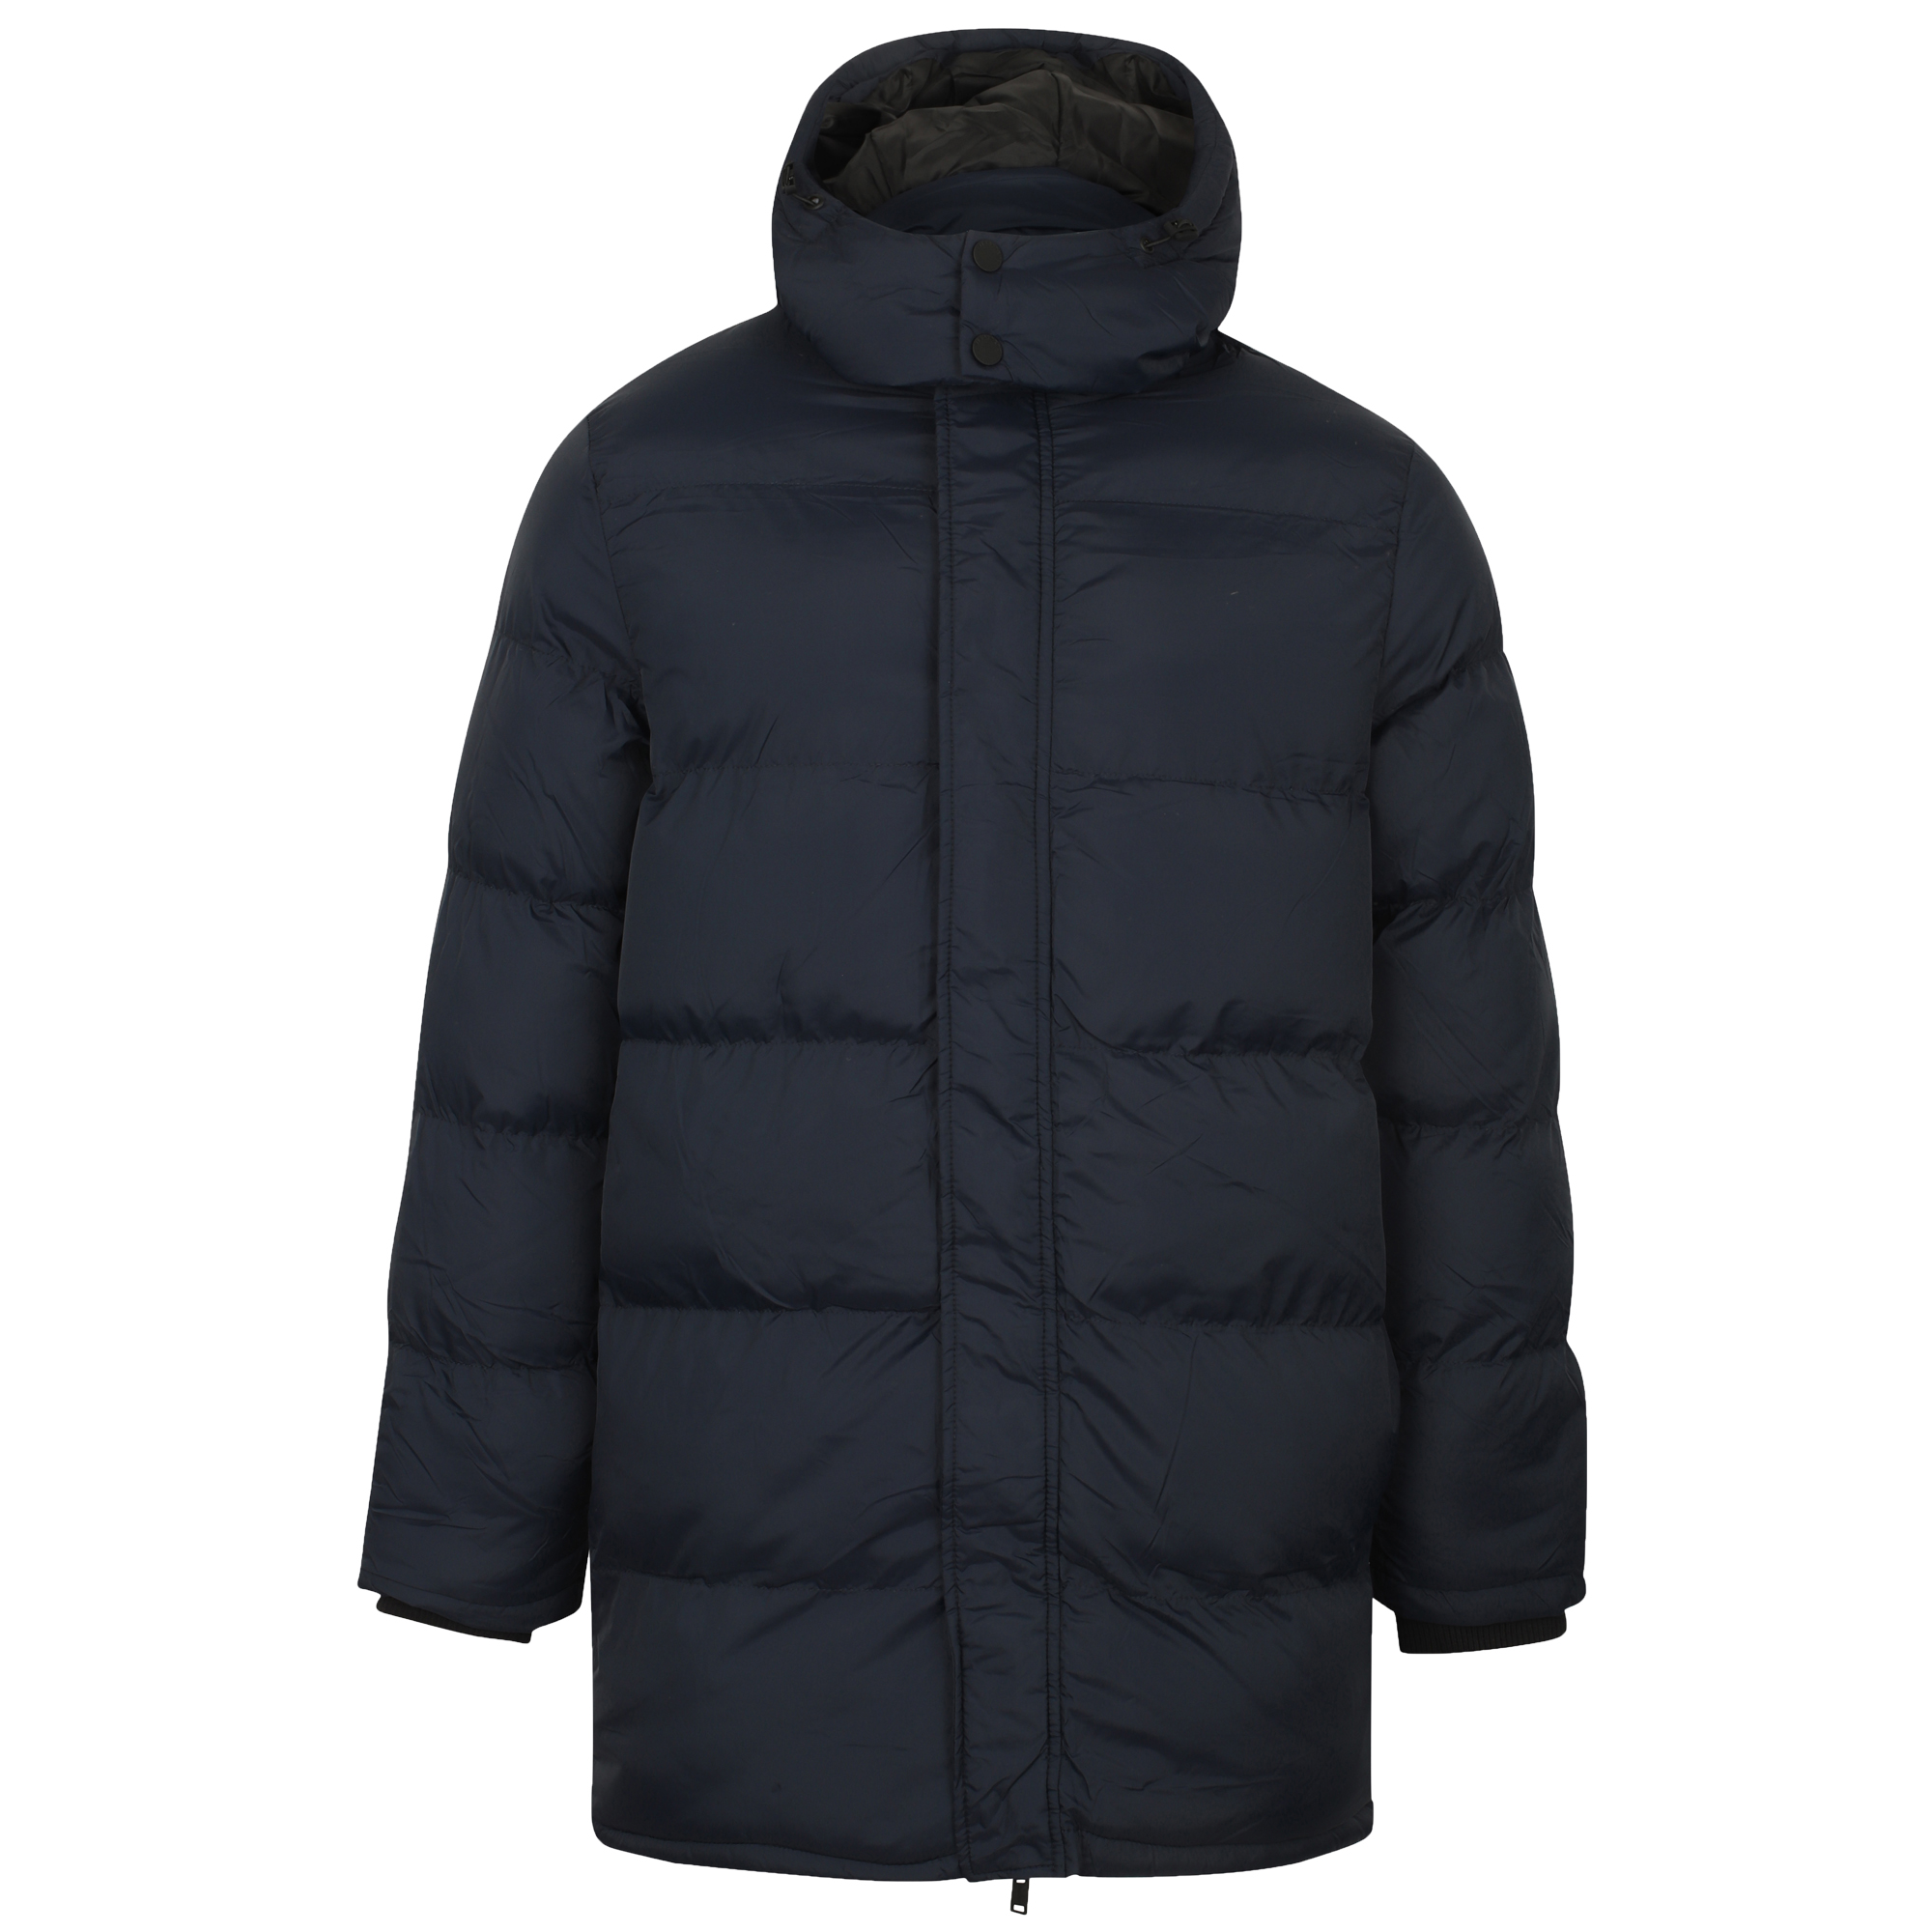 Mens-Padded-Hooded-Long-Jacket-Dissident-Coat-Quilted-DAGNEY-Warm-Winter-Lined thumbnail 4